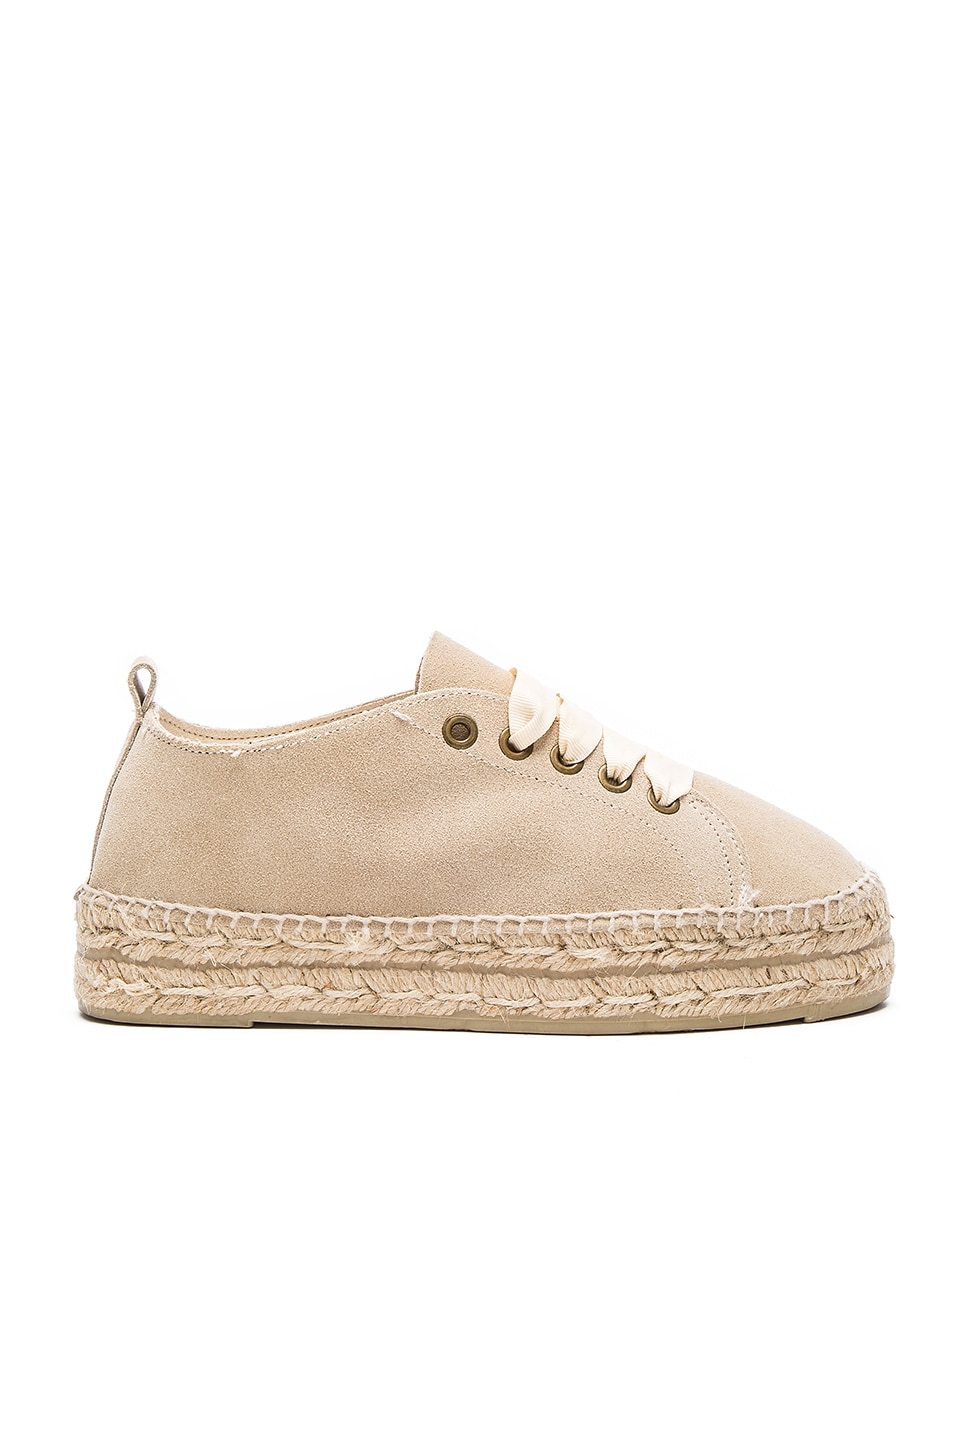 MANEBI Hamptons lace-up espadrilles L05TgYKA